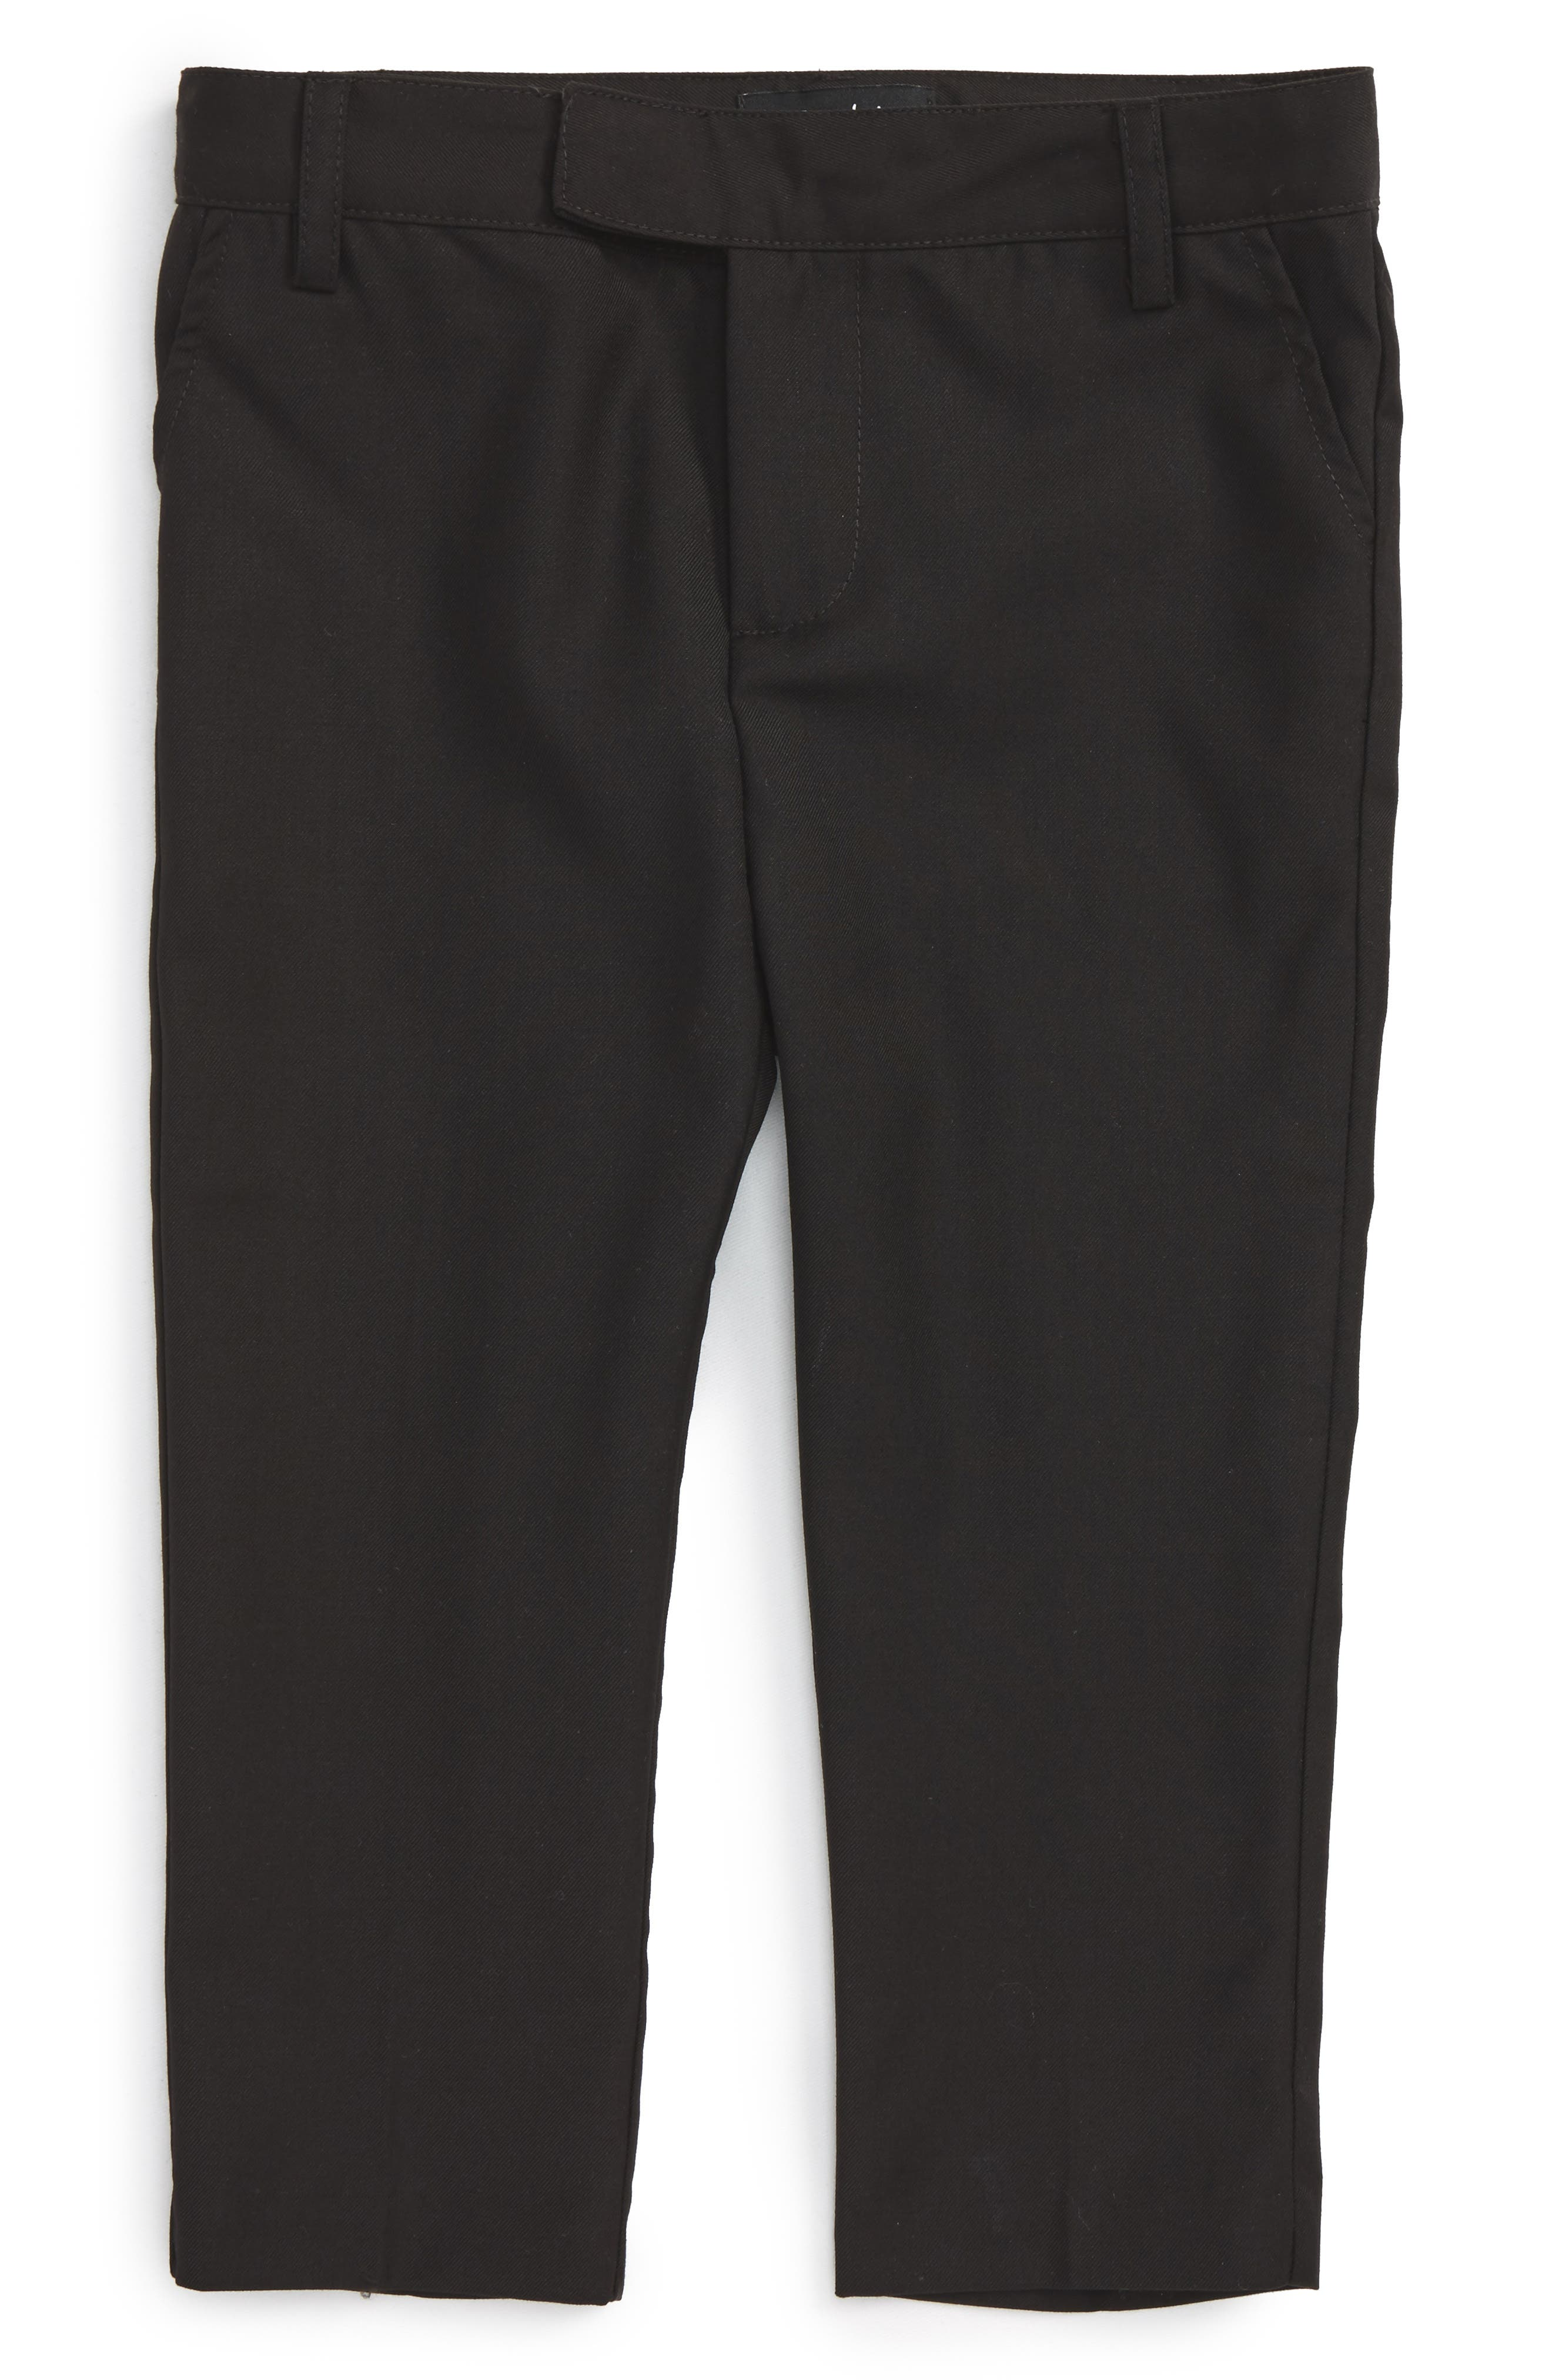 Harry Suit Pants,                         Main,                         color, Black